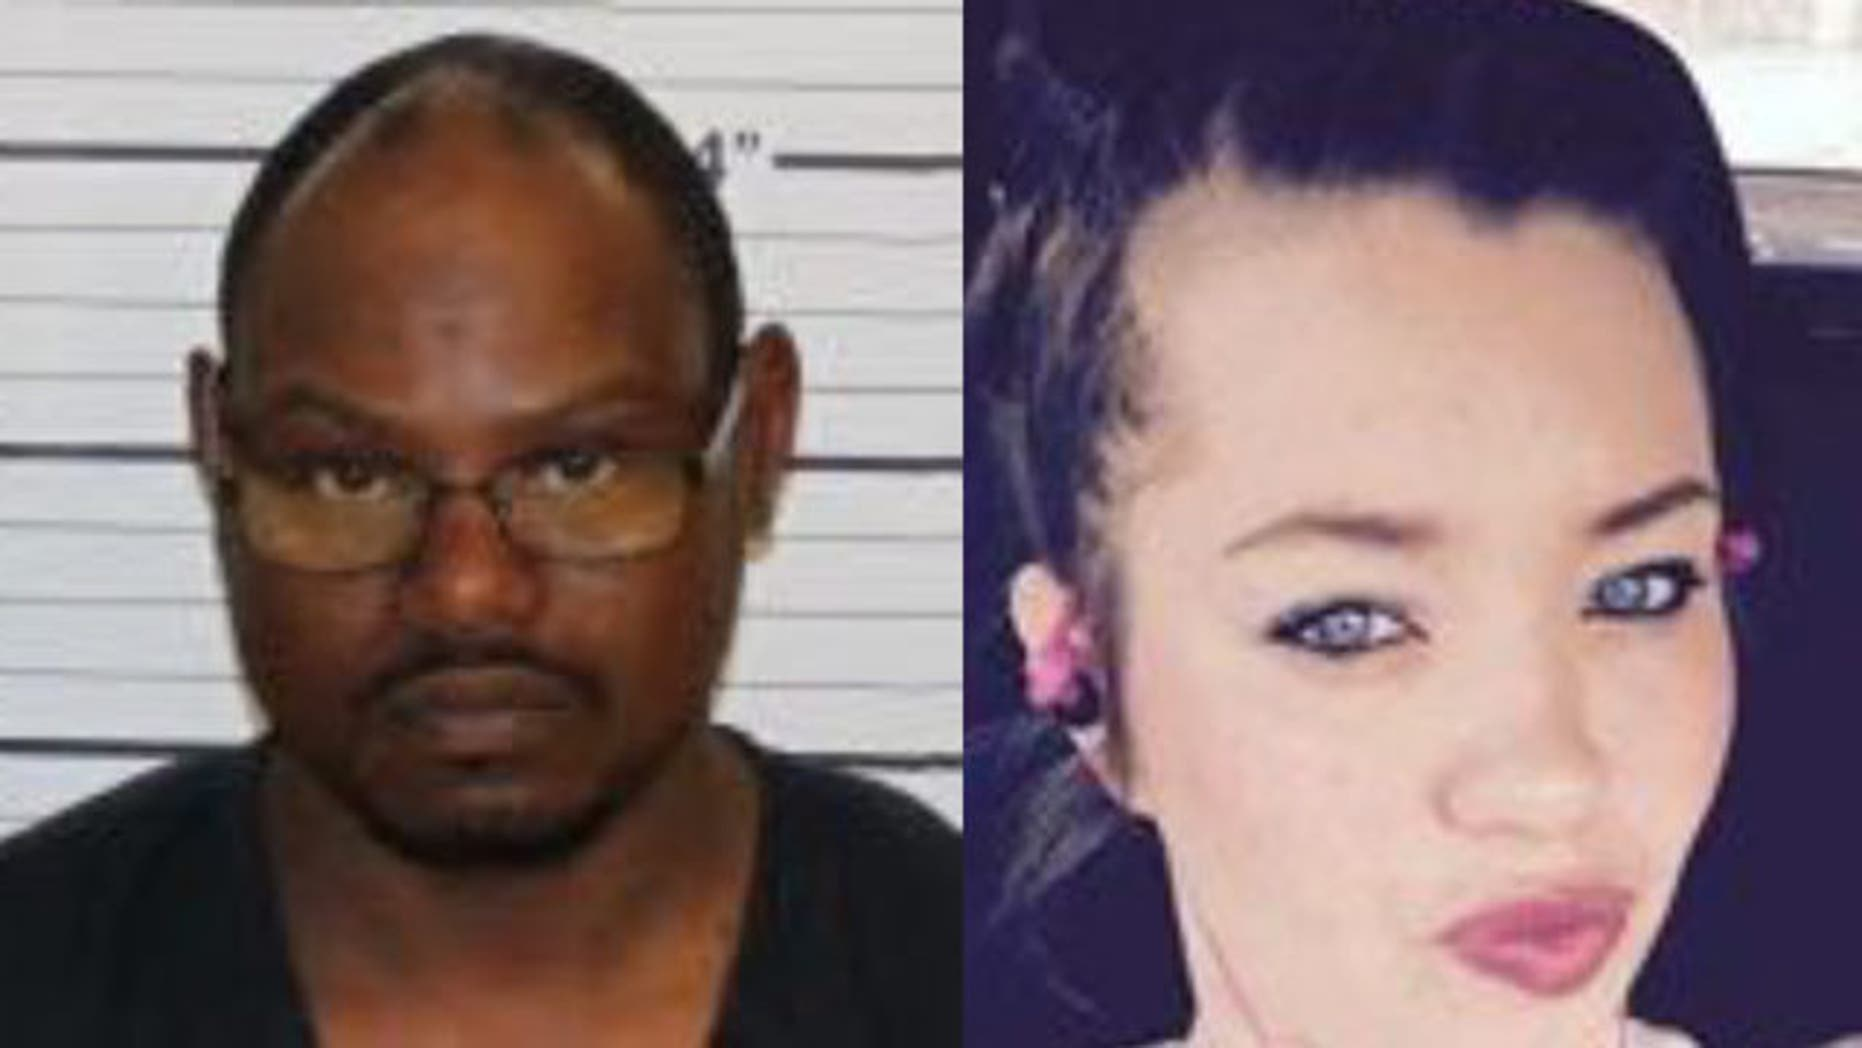 Eric Wells, left, was arrested after allegedly kidnapping Taryn Webster, who remains missing as of Tuesday.